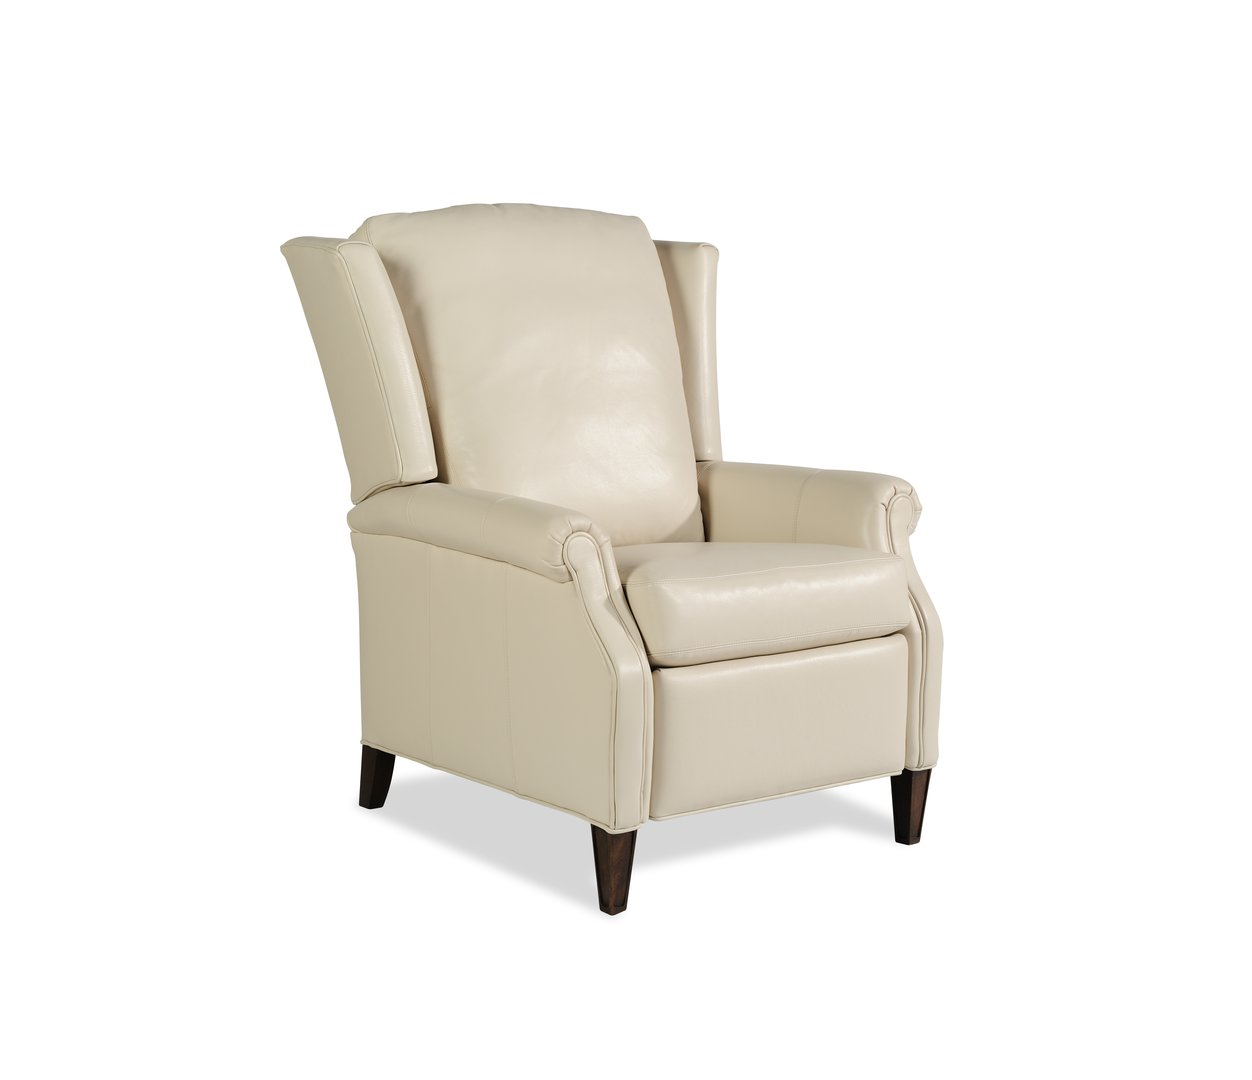 Frazier Reclining Chair Image